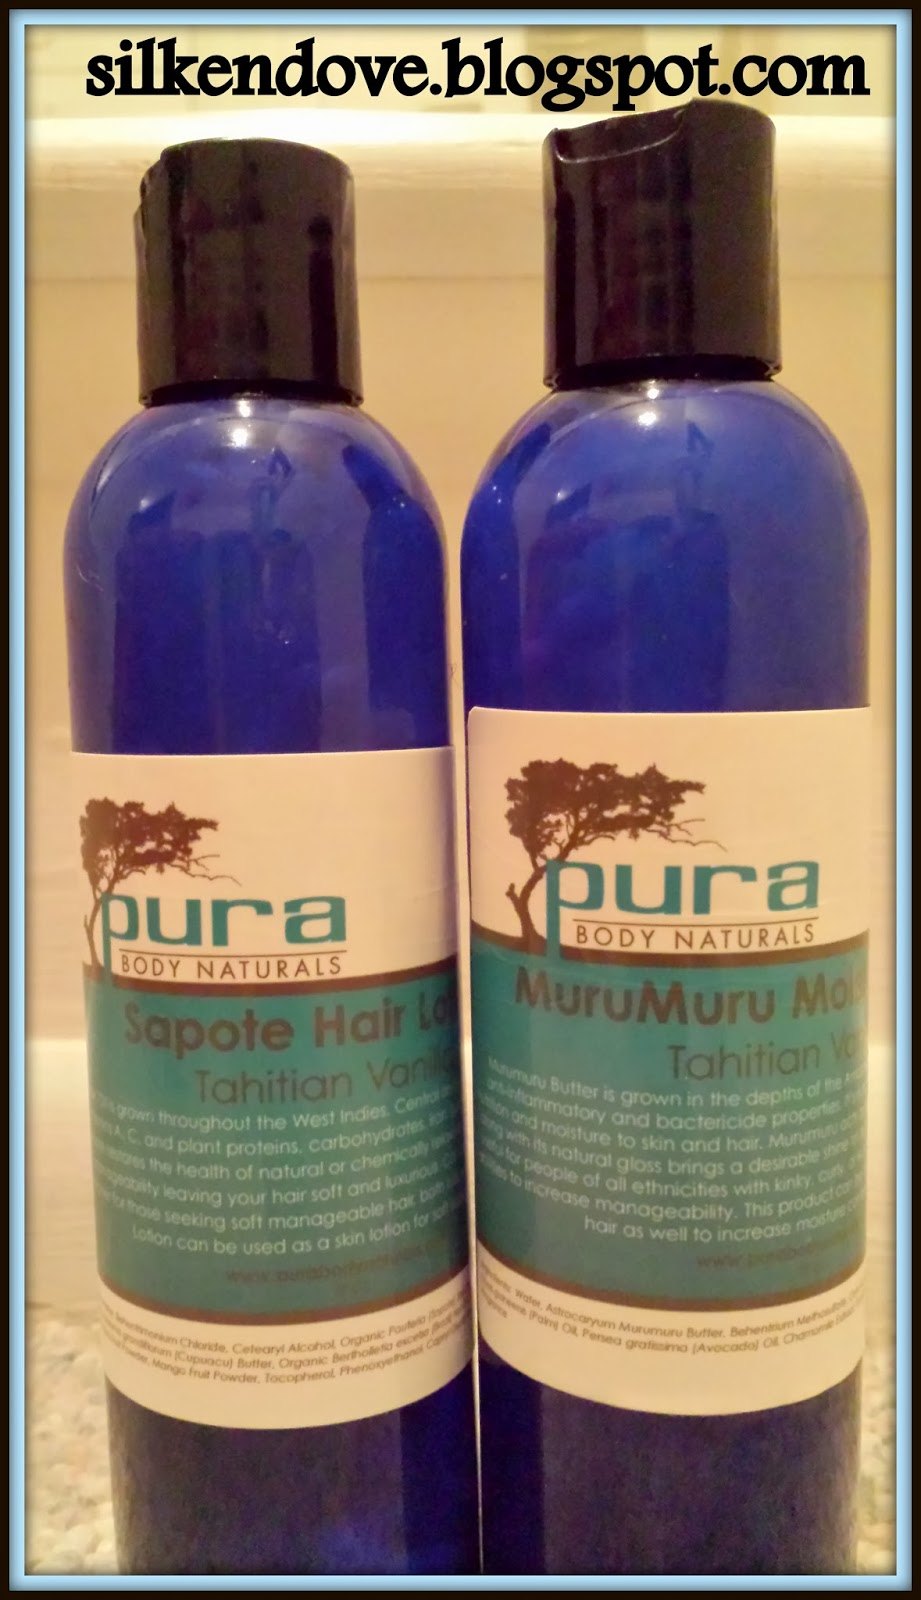 Pura Body Naturals Hair Products